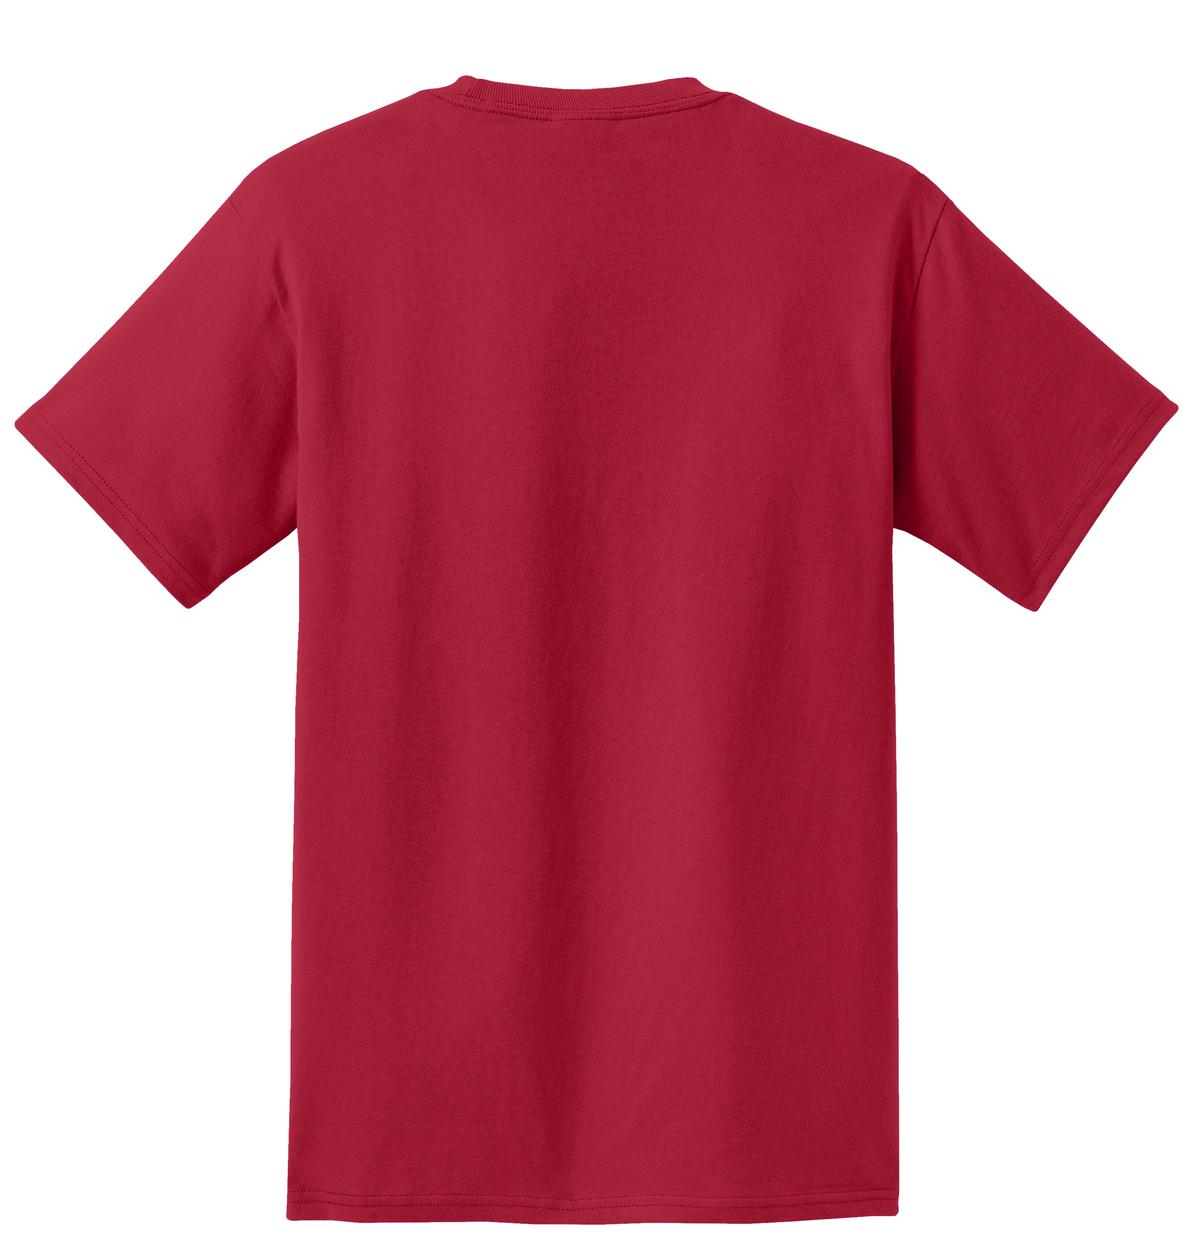 Men's Essential T Shirt with Pocket Red